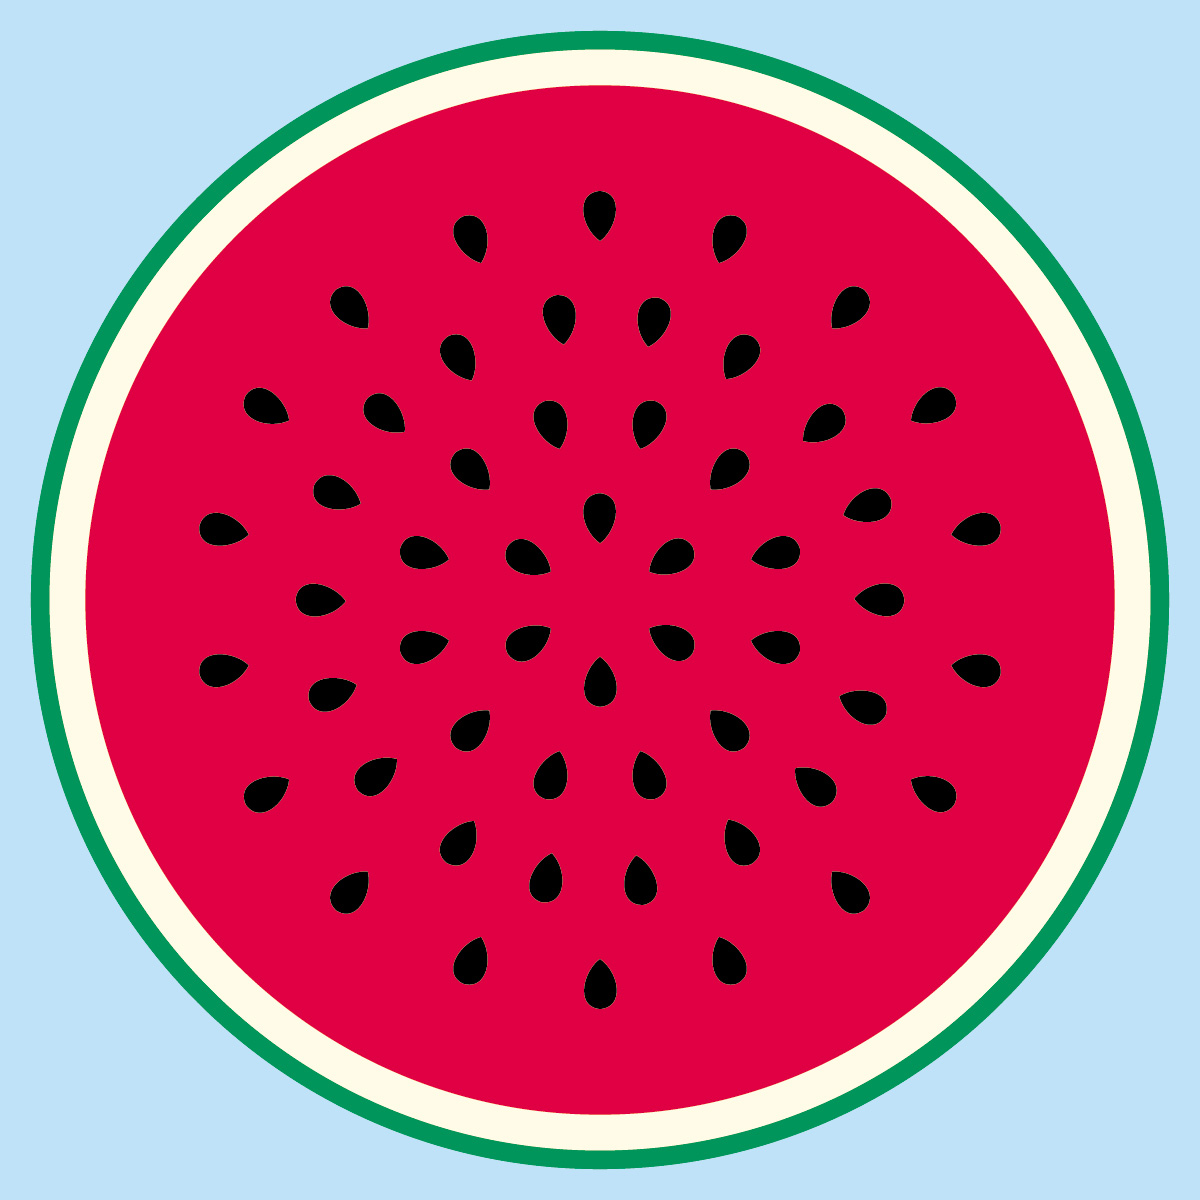 Cute Watermelon Clipart About Terms clipart